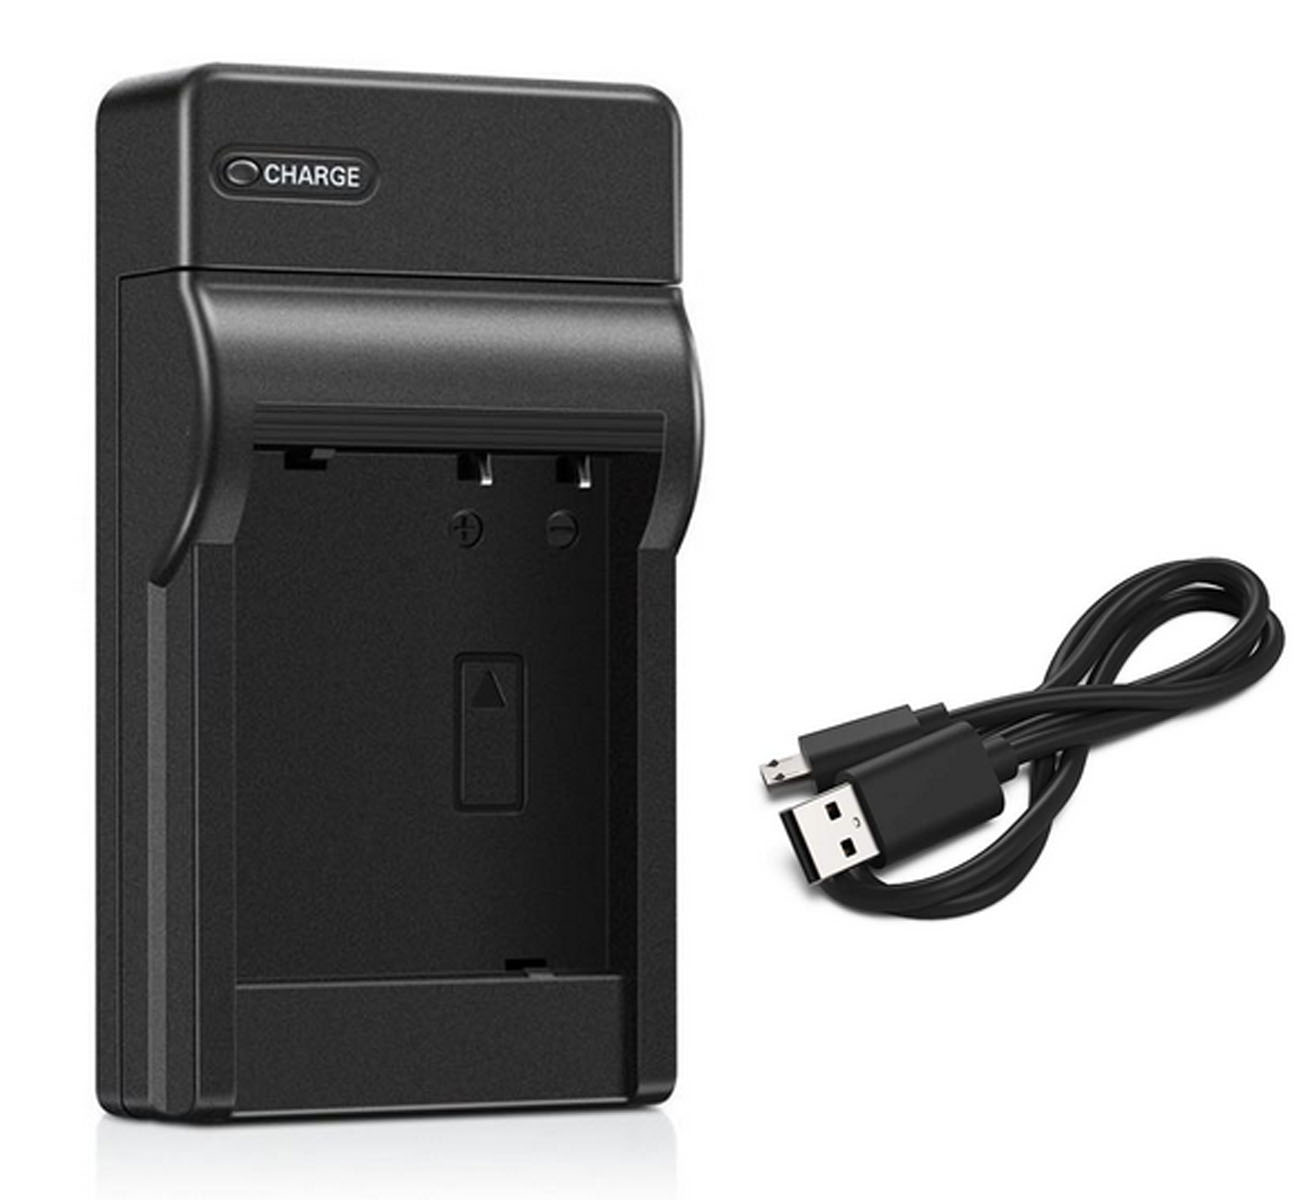 Battery Charger for <font><b>Sony</b></font> DCR-VX2000, DCR-<font><b>VX2100</b></font>, DCR-VX2200, DCR-VX9000, HDR-AX2000 Digital Handycam Camcorder image